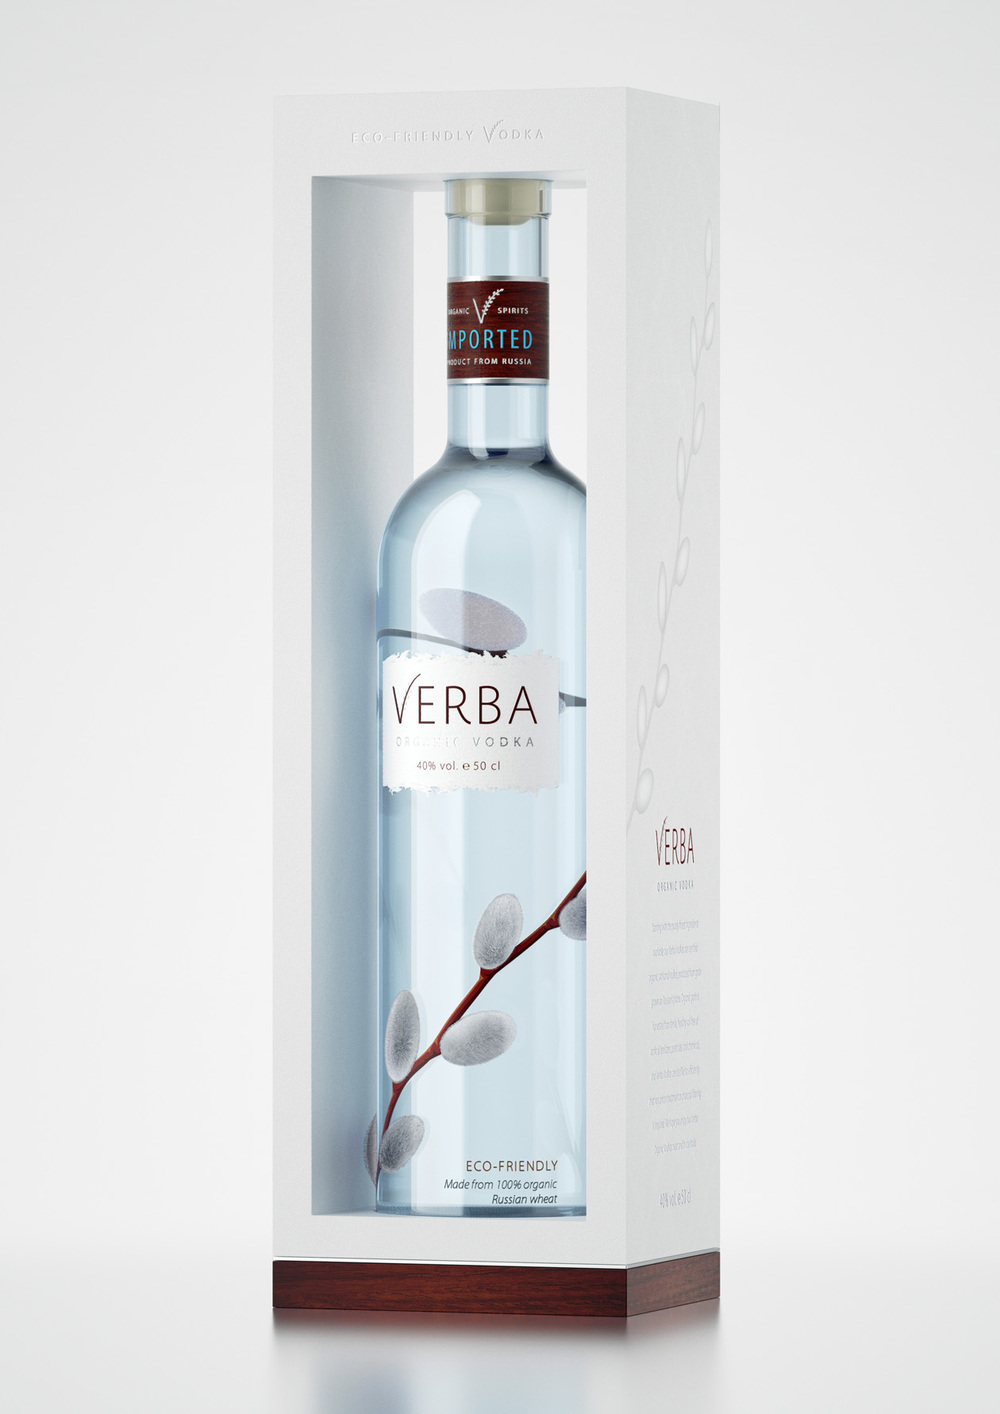 07_VERBA_Vodka_box.jpg